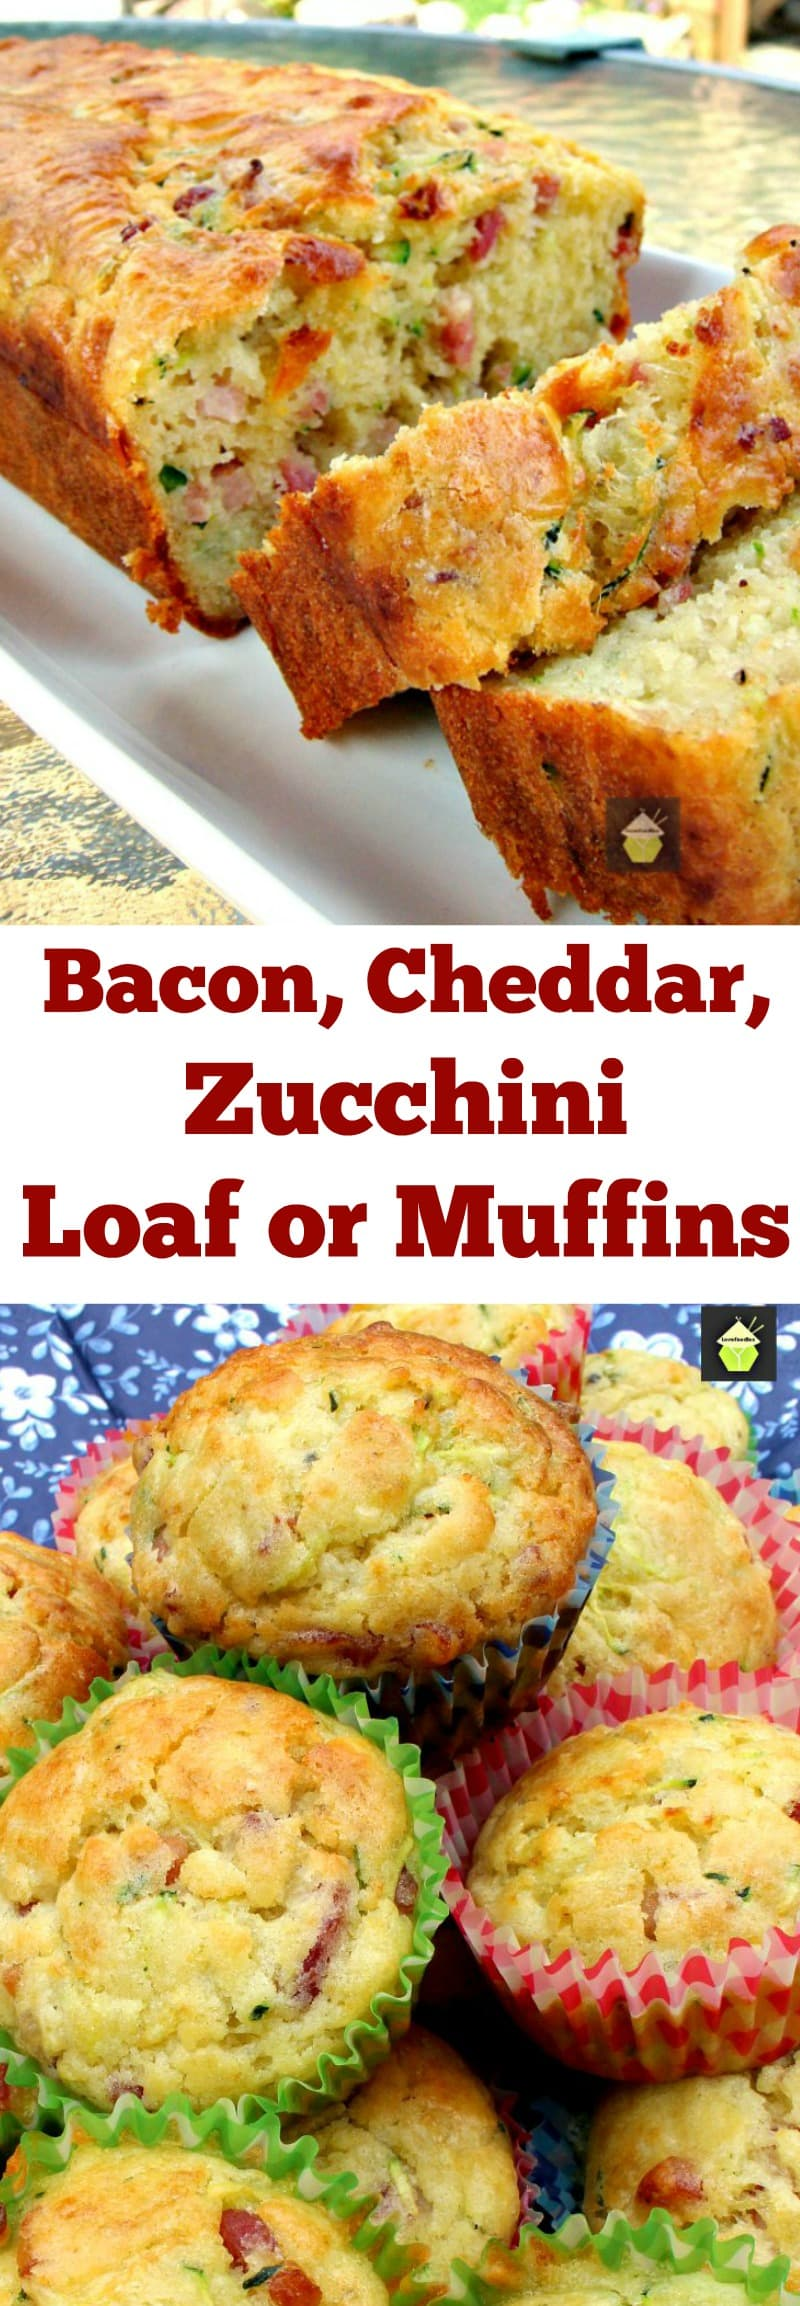 Bacon, Cheddar, Zucchini Loaf Muffins, great for parties, pot lucks and also freezer friendly too! | Lovefoodies.com